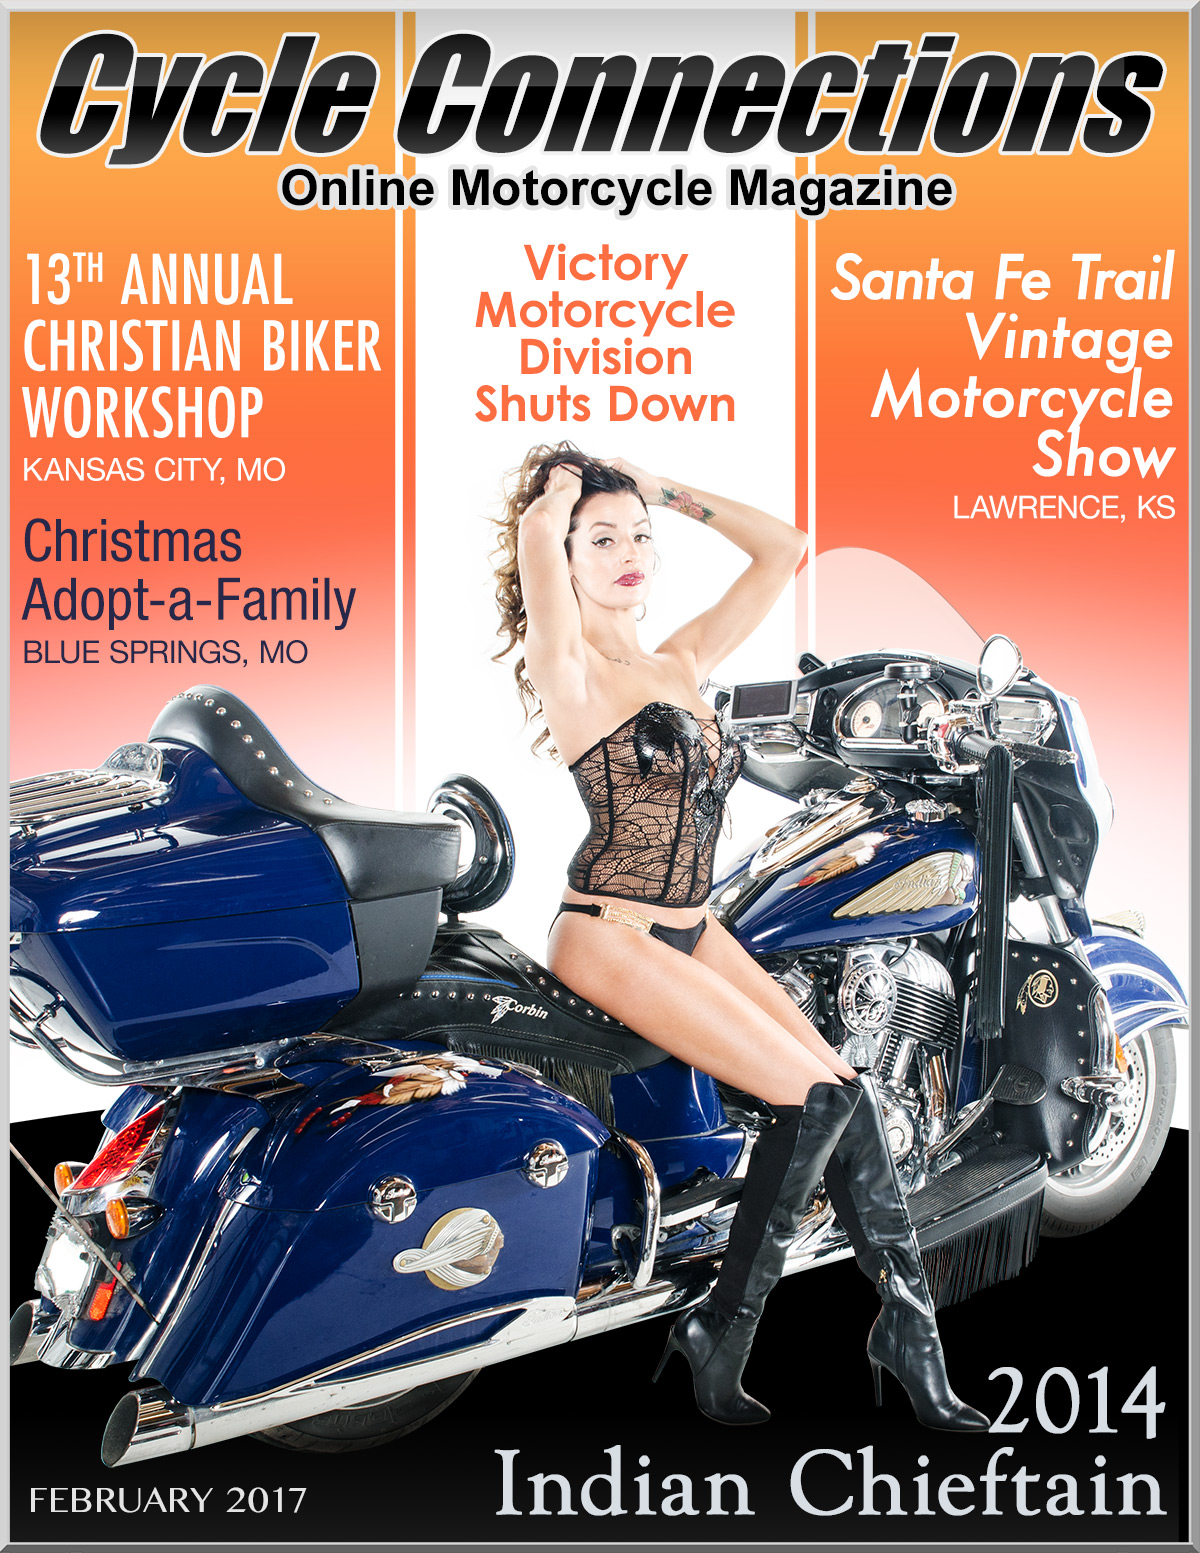 2014 Indian Chieftain and Cover Model Jessica